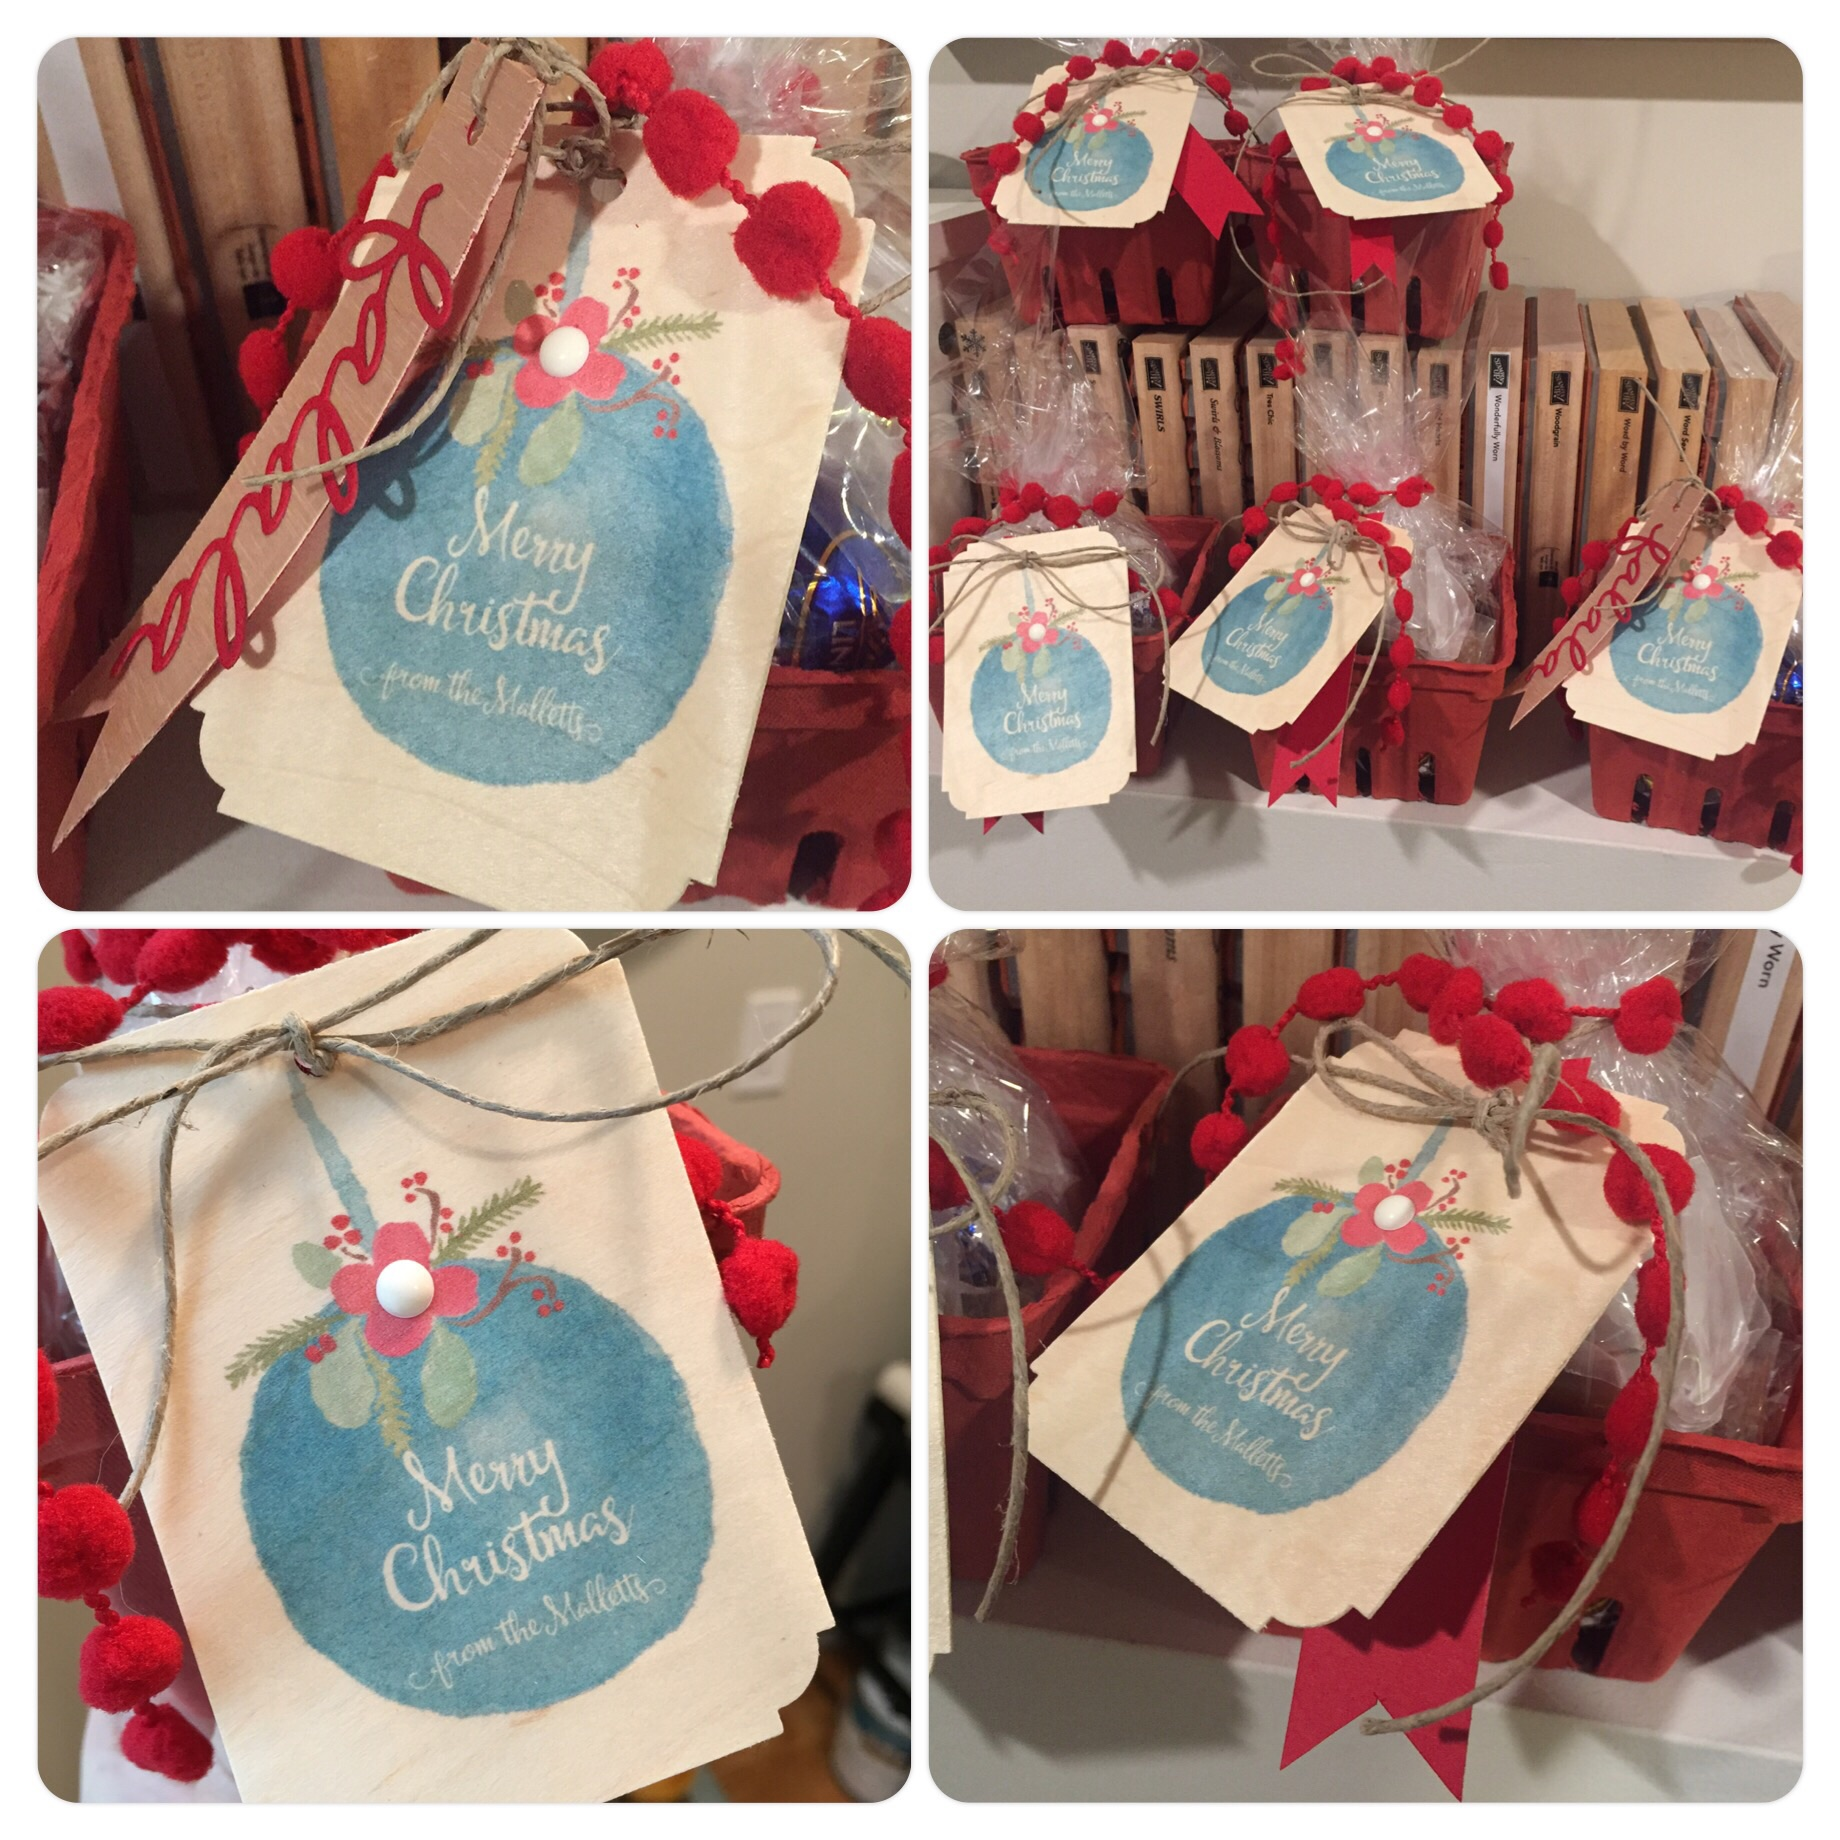 Neighbor and friend gifts: Berry baskets filled with chocolate and caramel. Hand made/designed tag on wood.